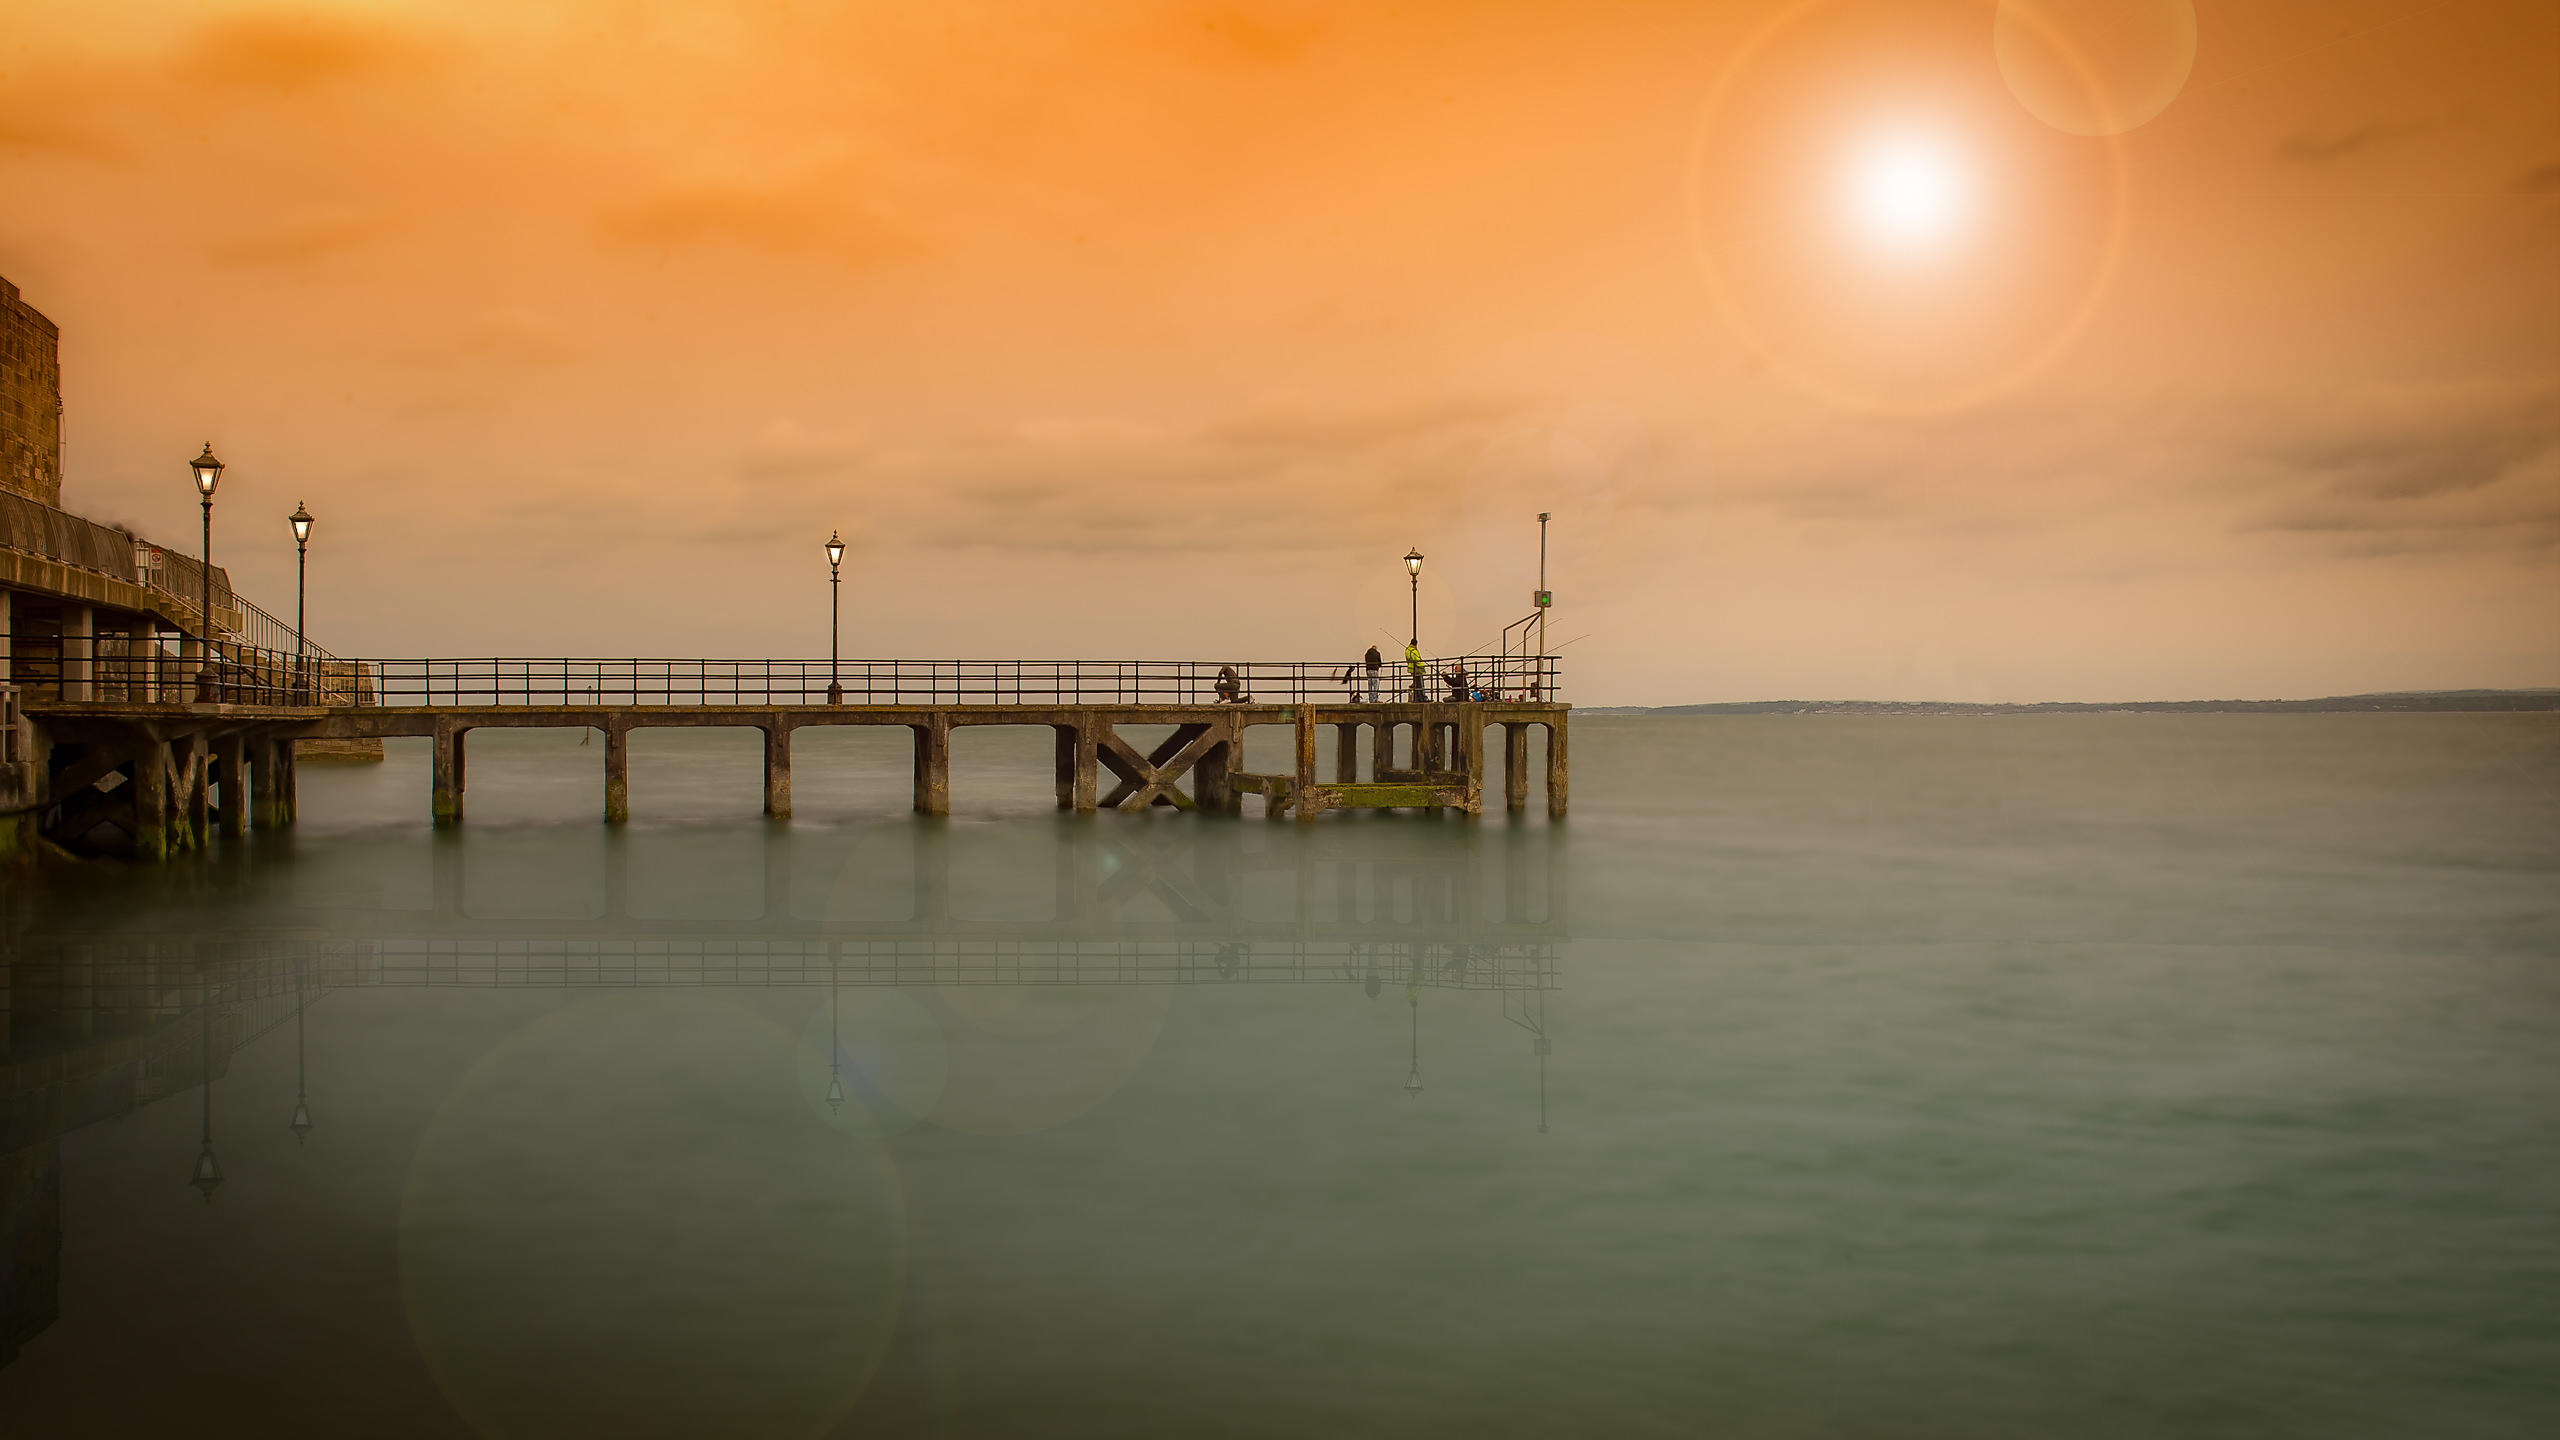 Powder Bridge pier at Sunset, in Portsmouth, England